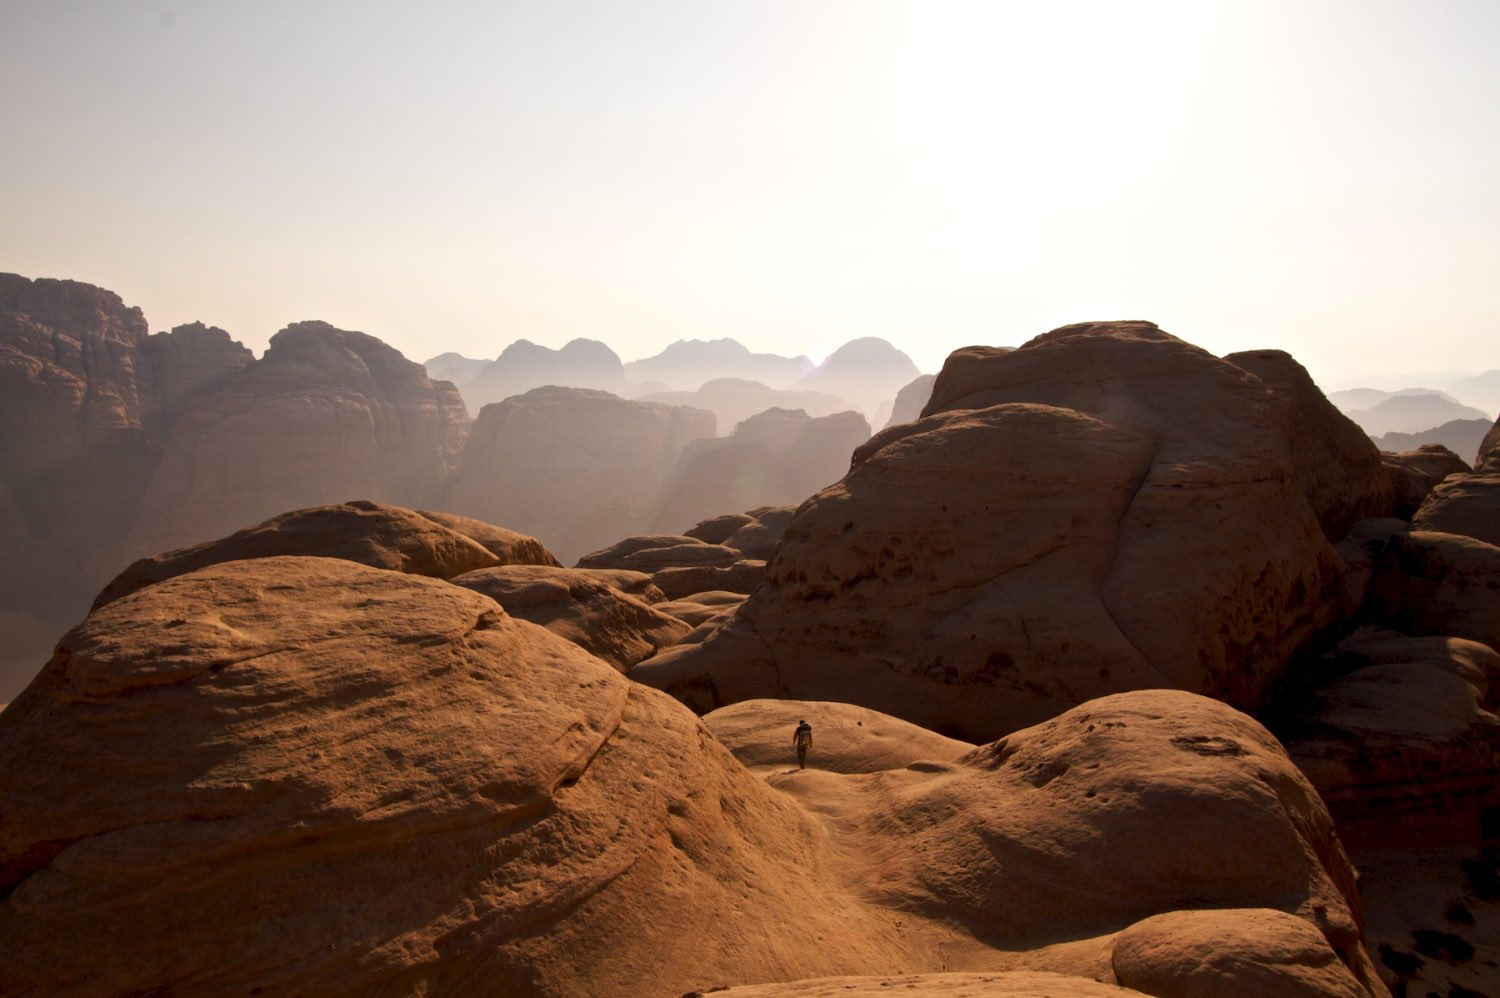 Searching for the summit of Jebel Rum